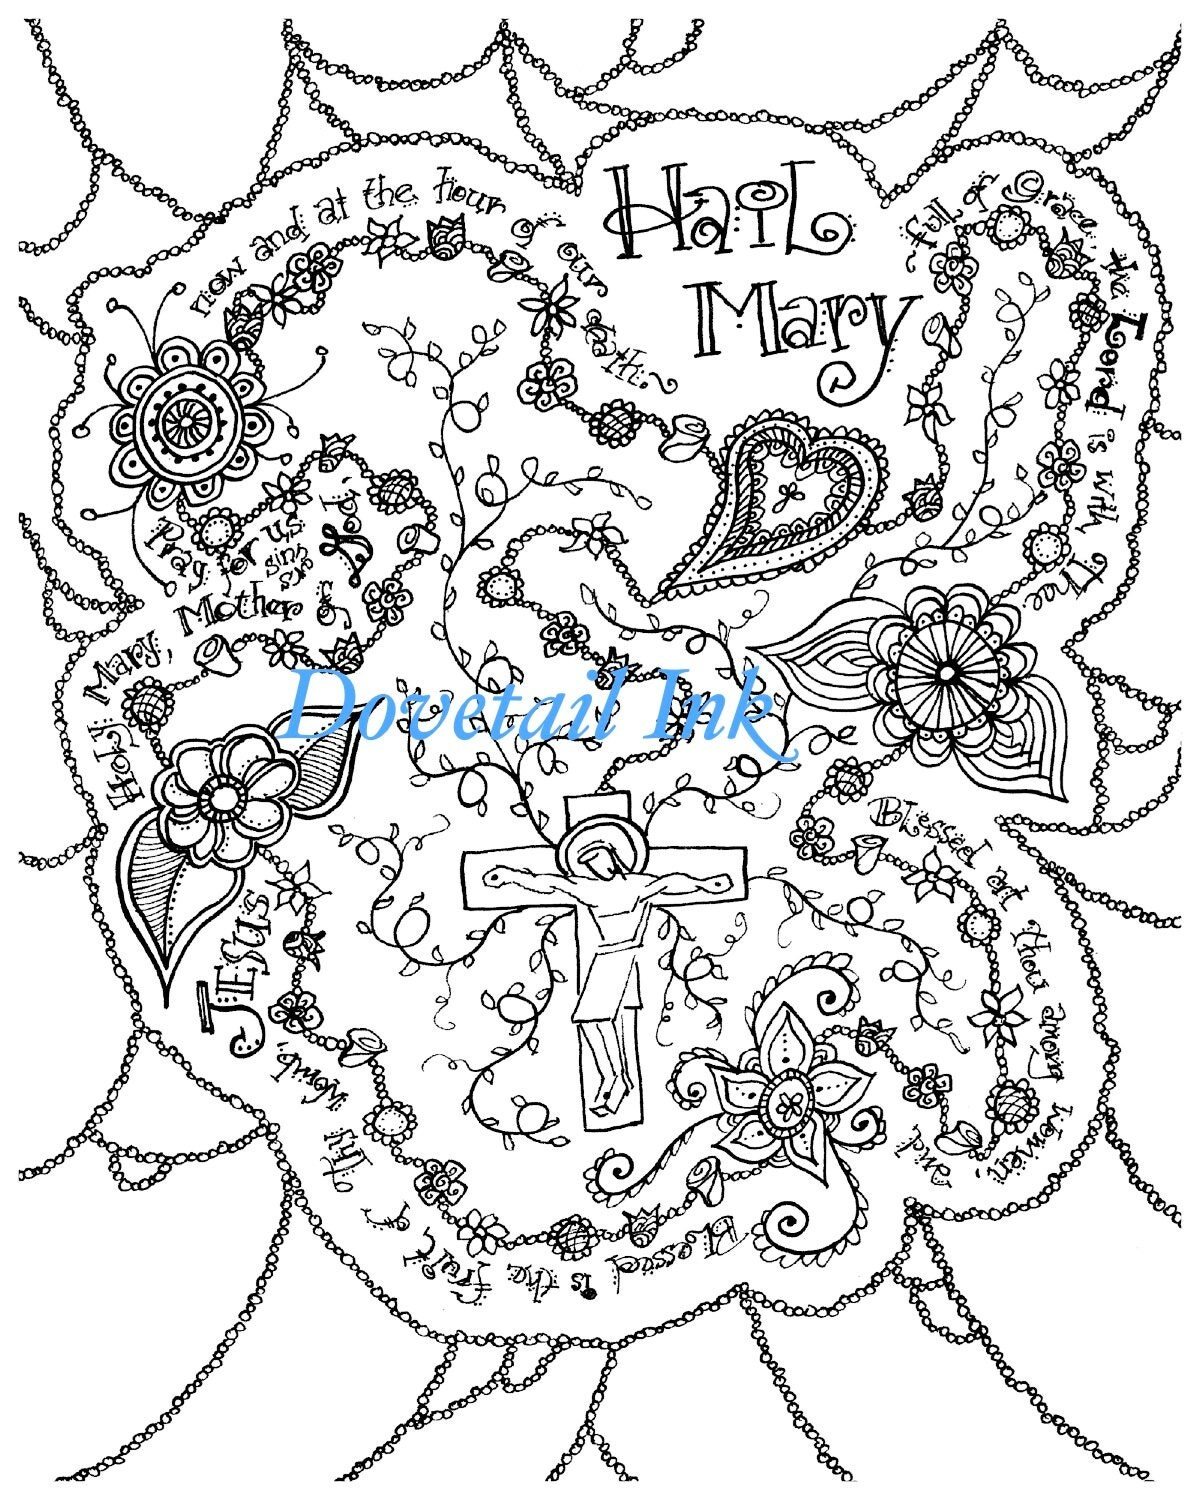 printable hail mary catholic prayer coloring page for